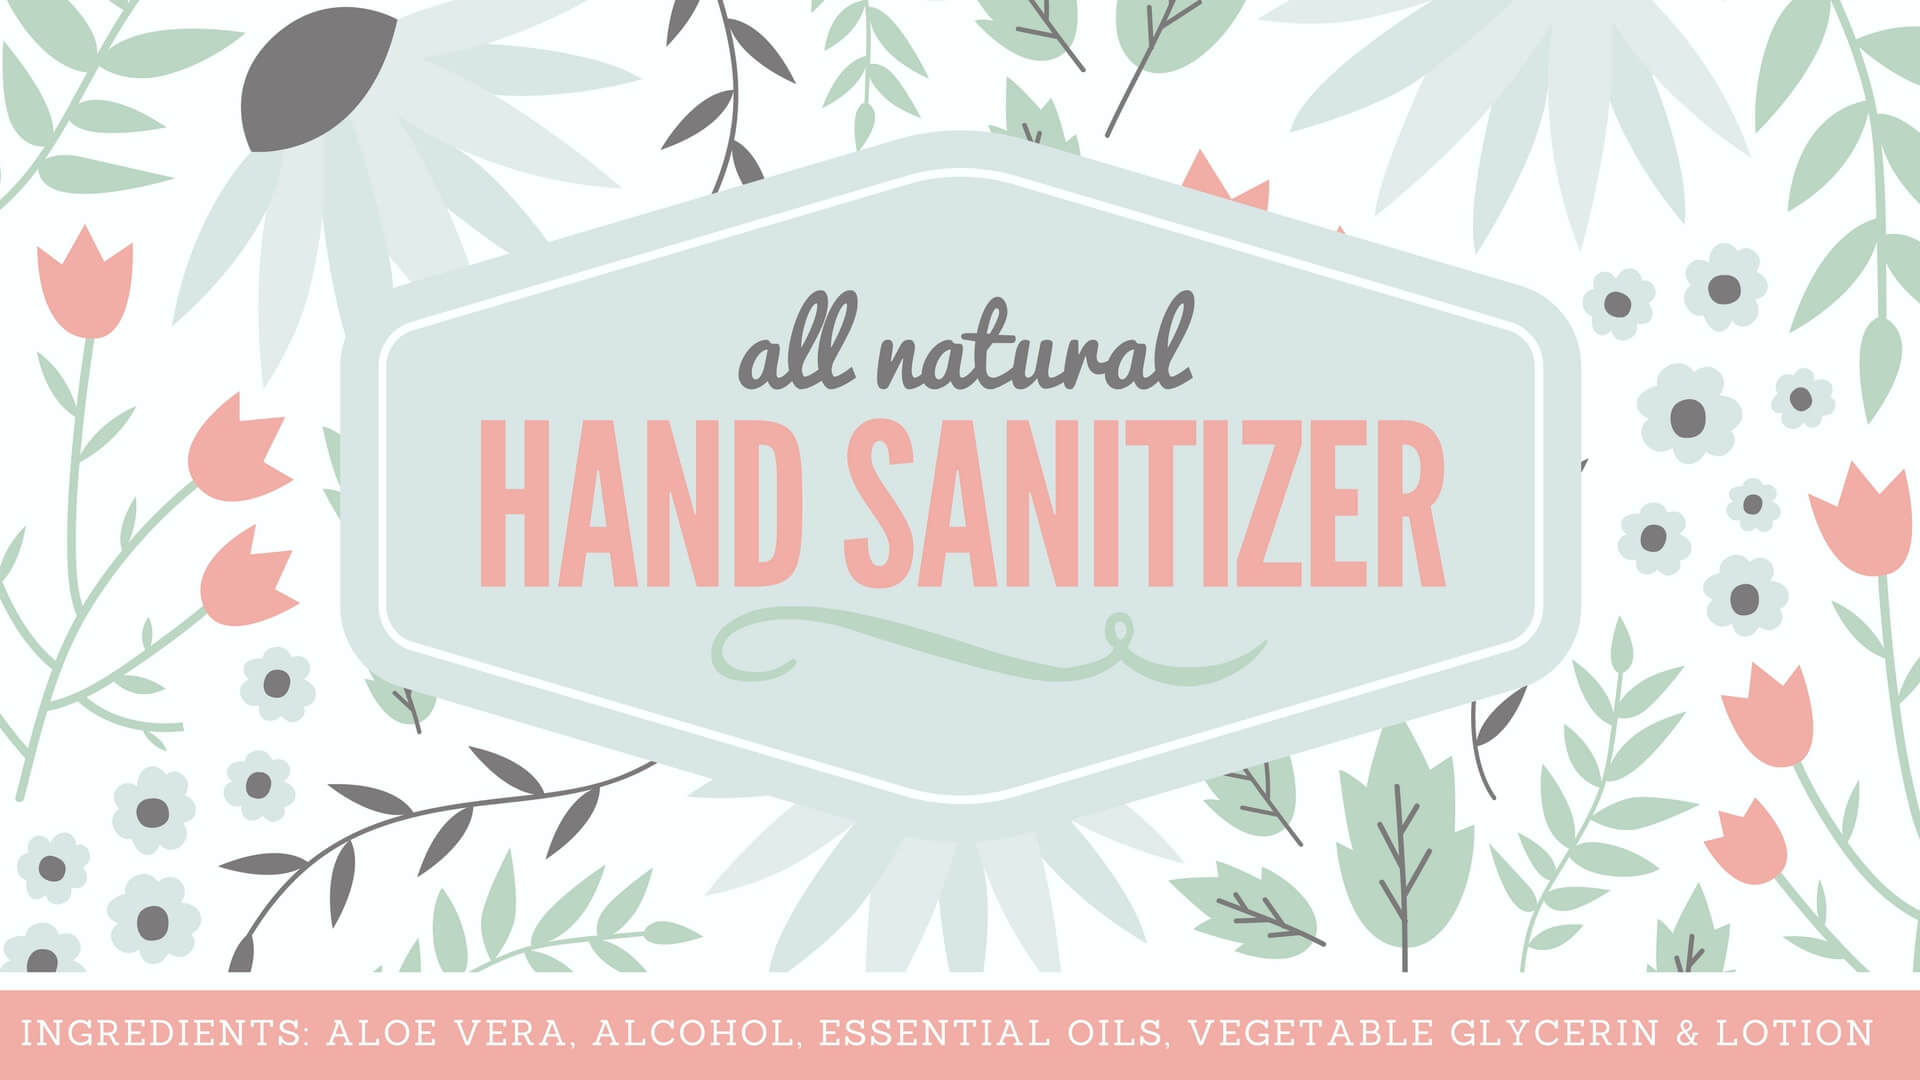 All Natural Hand Sanitizer Recipe